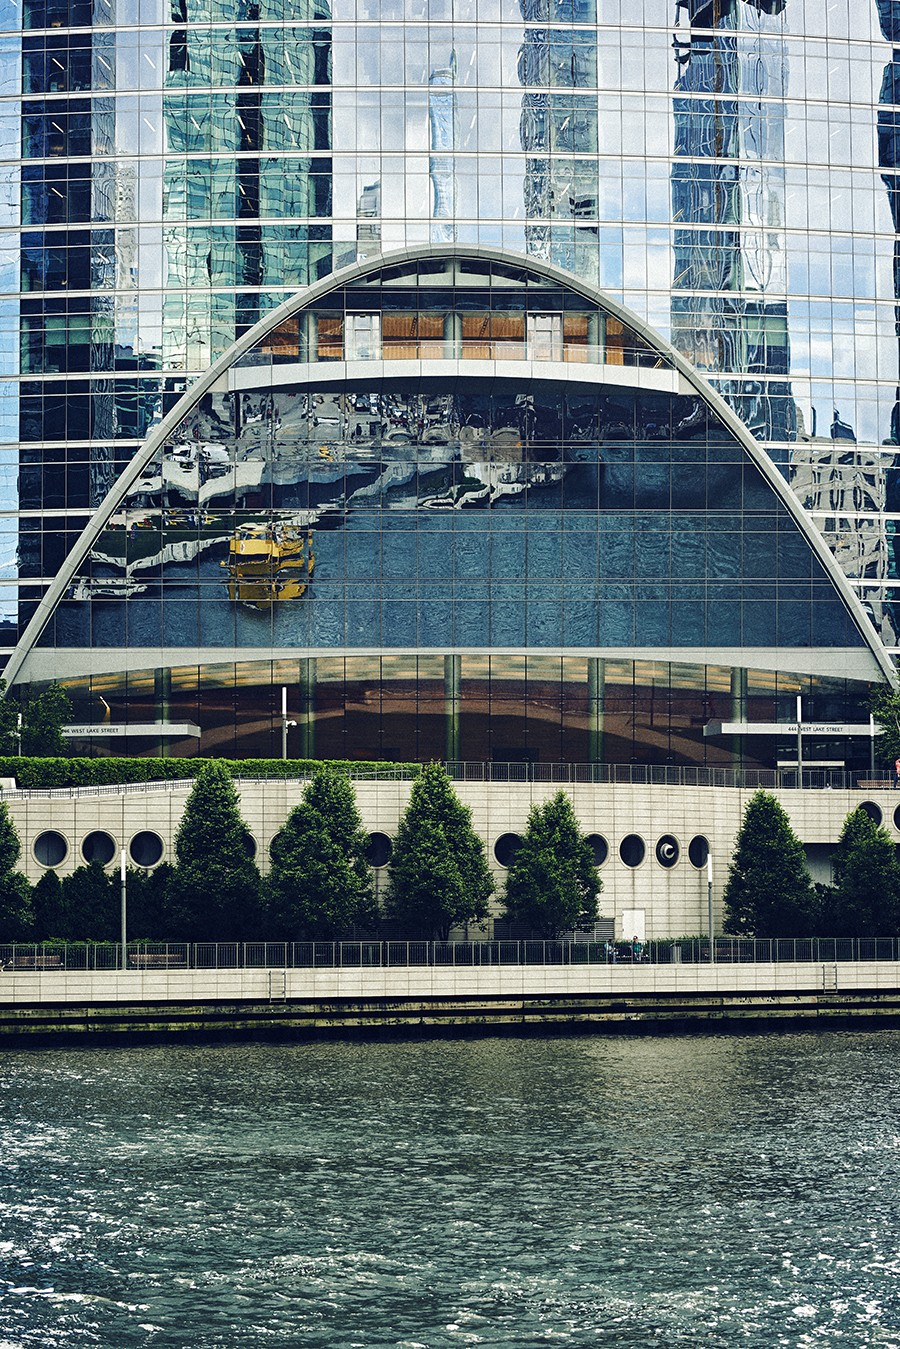 Reflection of the ship in the River Point building at 444 W. Lake. - MAX THOMSEN